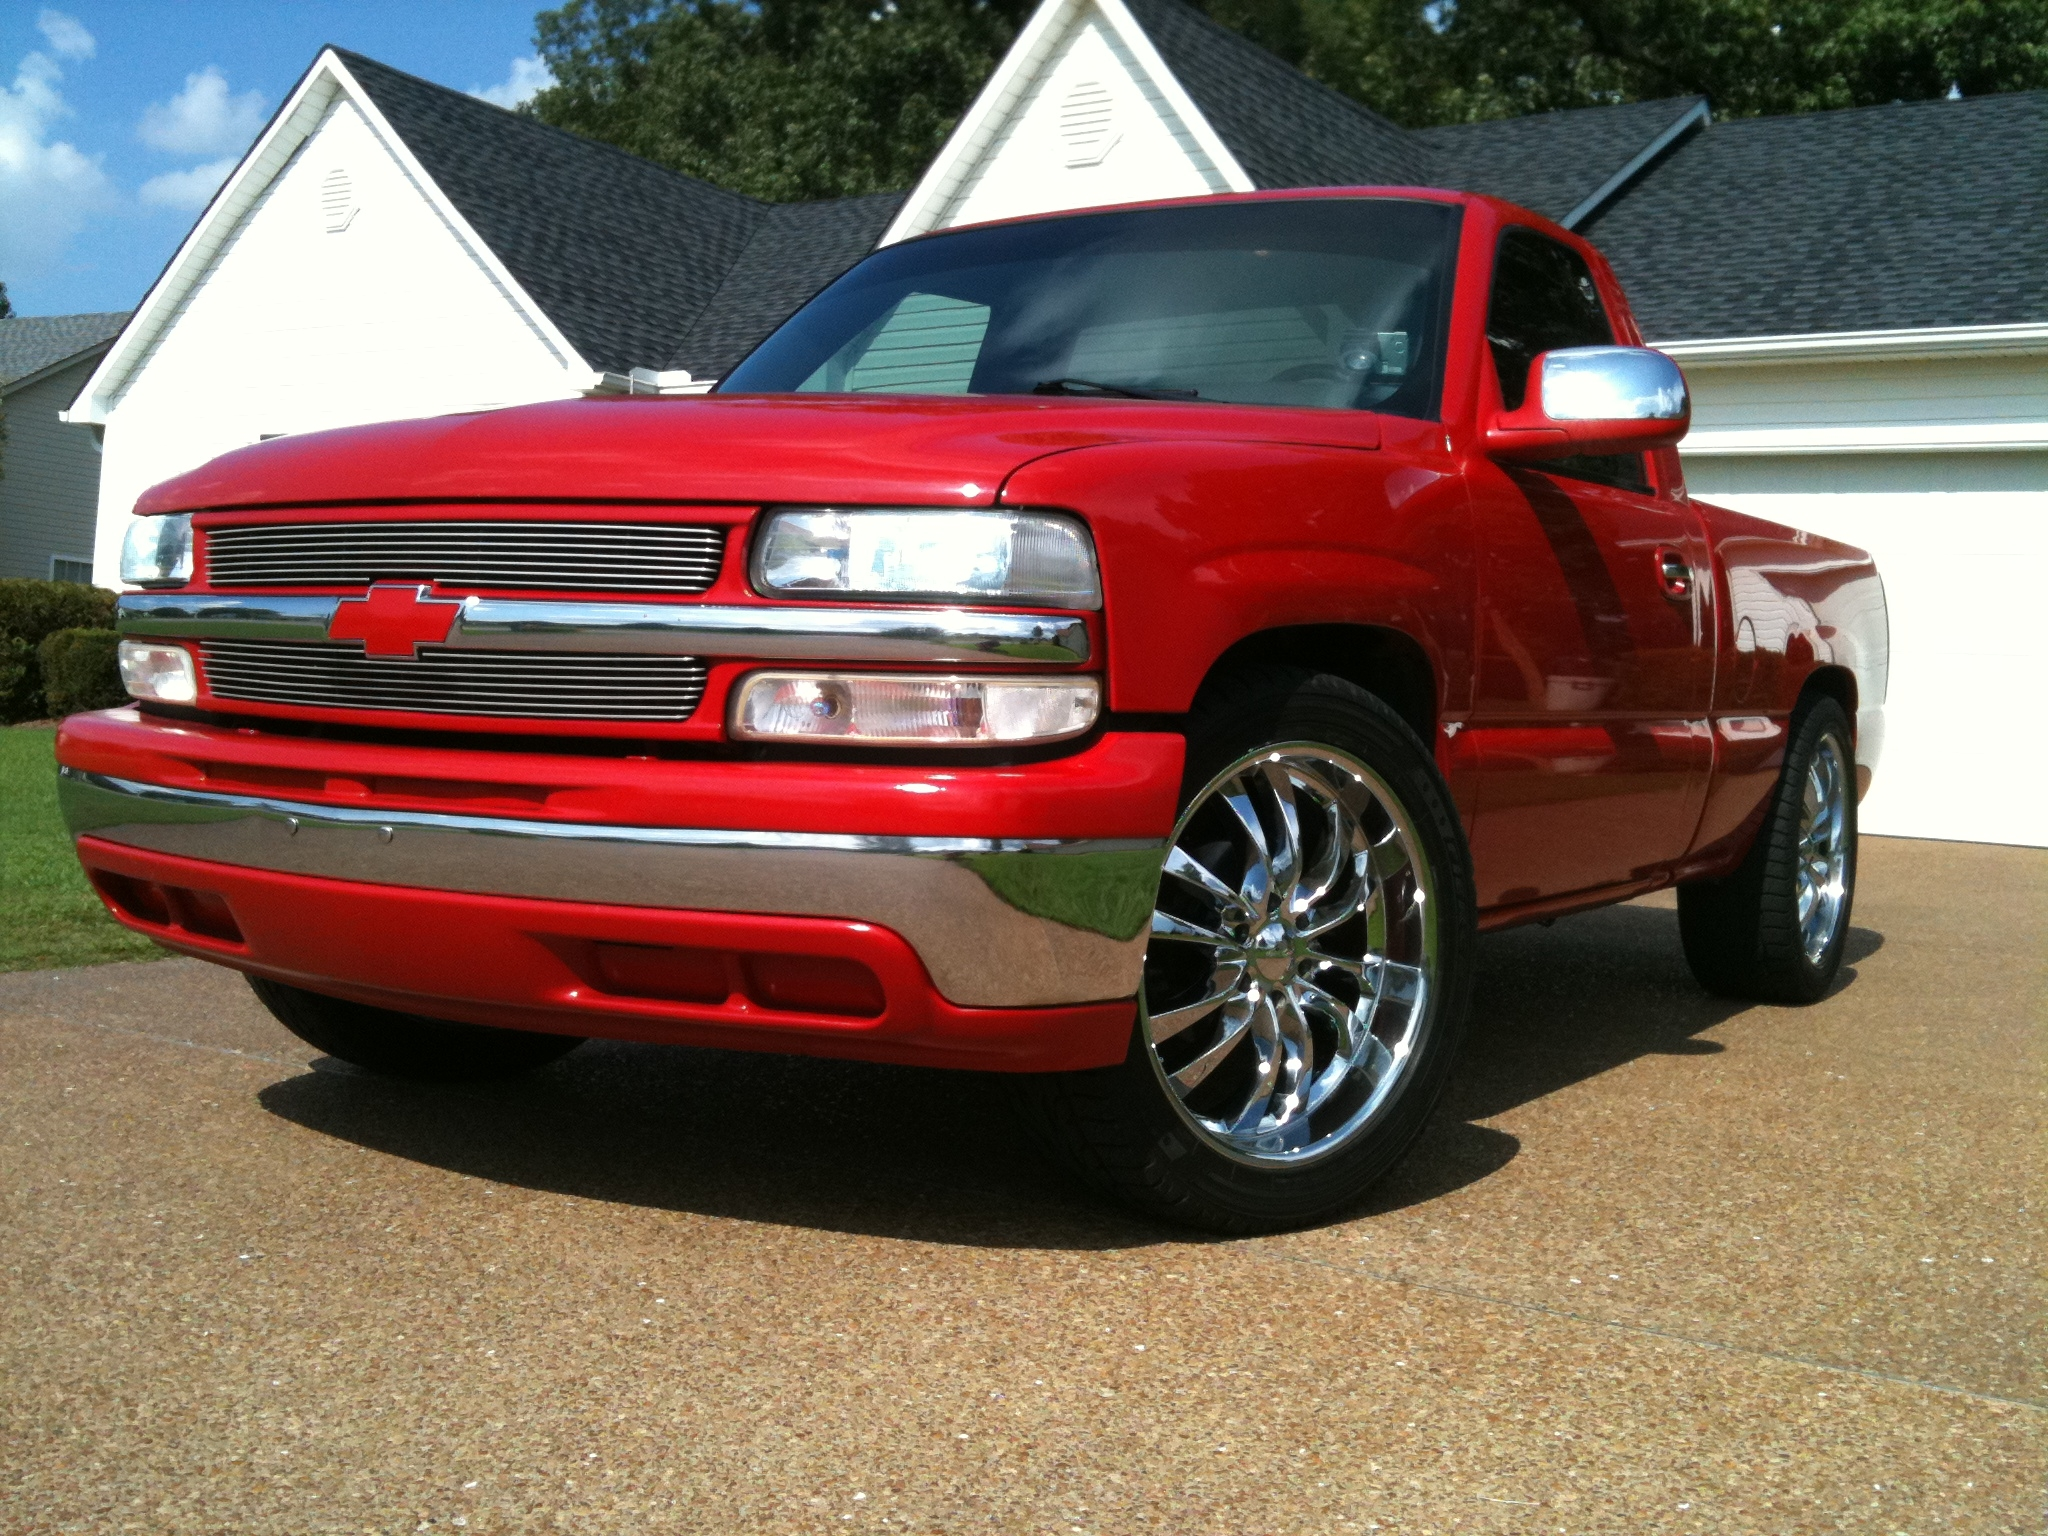 2hott4yall 2001 chevrolet silverado 1500 regular cab specs photos modification info at cardomain. Black Bedroom Furniture Sets. Home Design Ideas